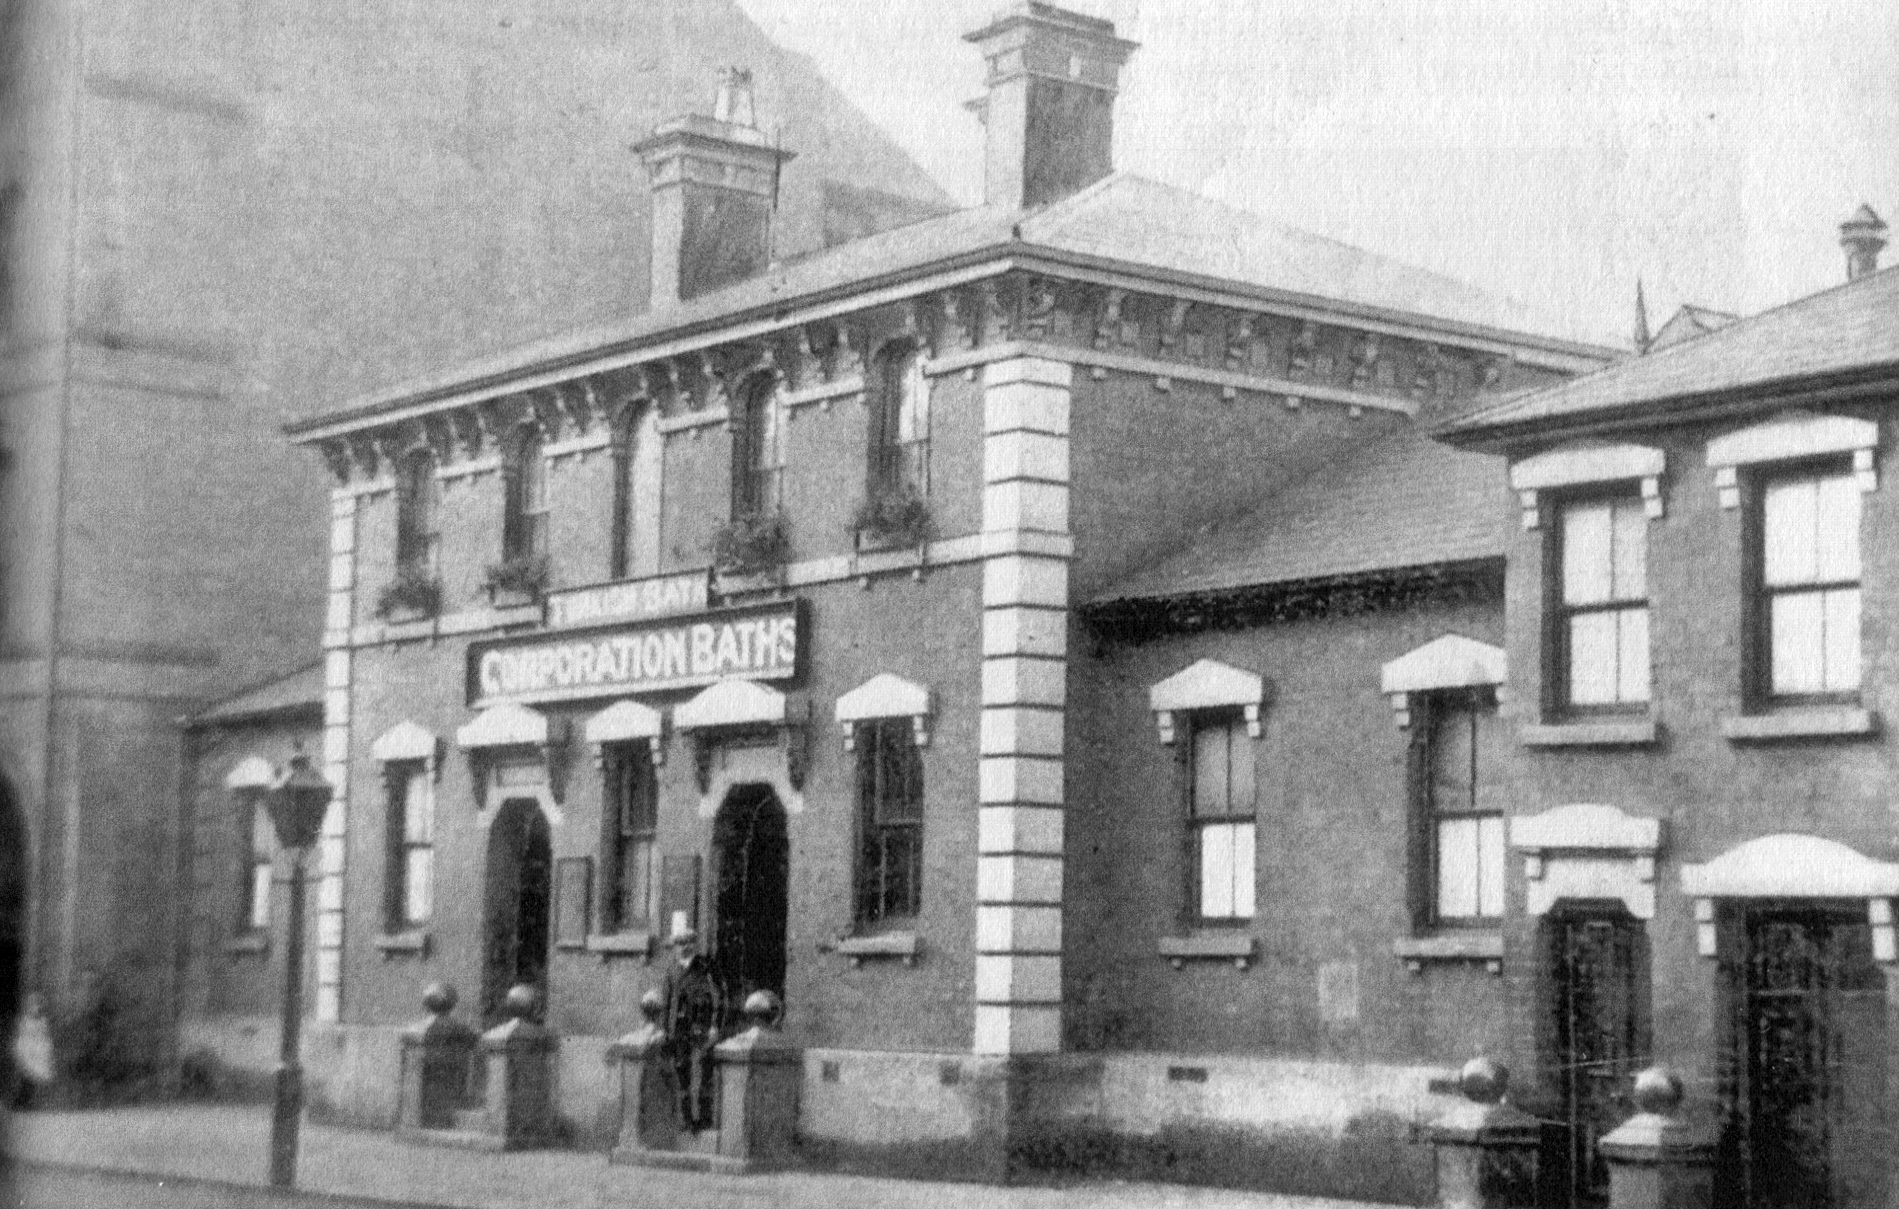 One of our members, Michael Loftus, is writing a history of bathing facilities in Kidderminster. He has much and detailed information about the Mill Street ...